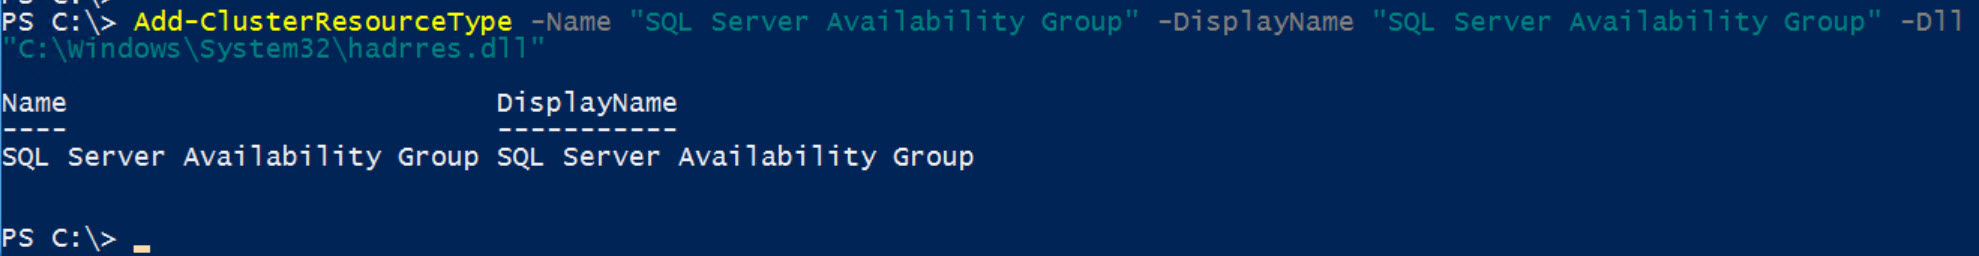 SQL SERVER - FIX: Msg 41105: Failed to Create the Windows Server Failover Clustering (WSFC) Resource With Name and Type 'SQL Server Availability Group' ao-type-err-03